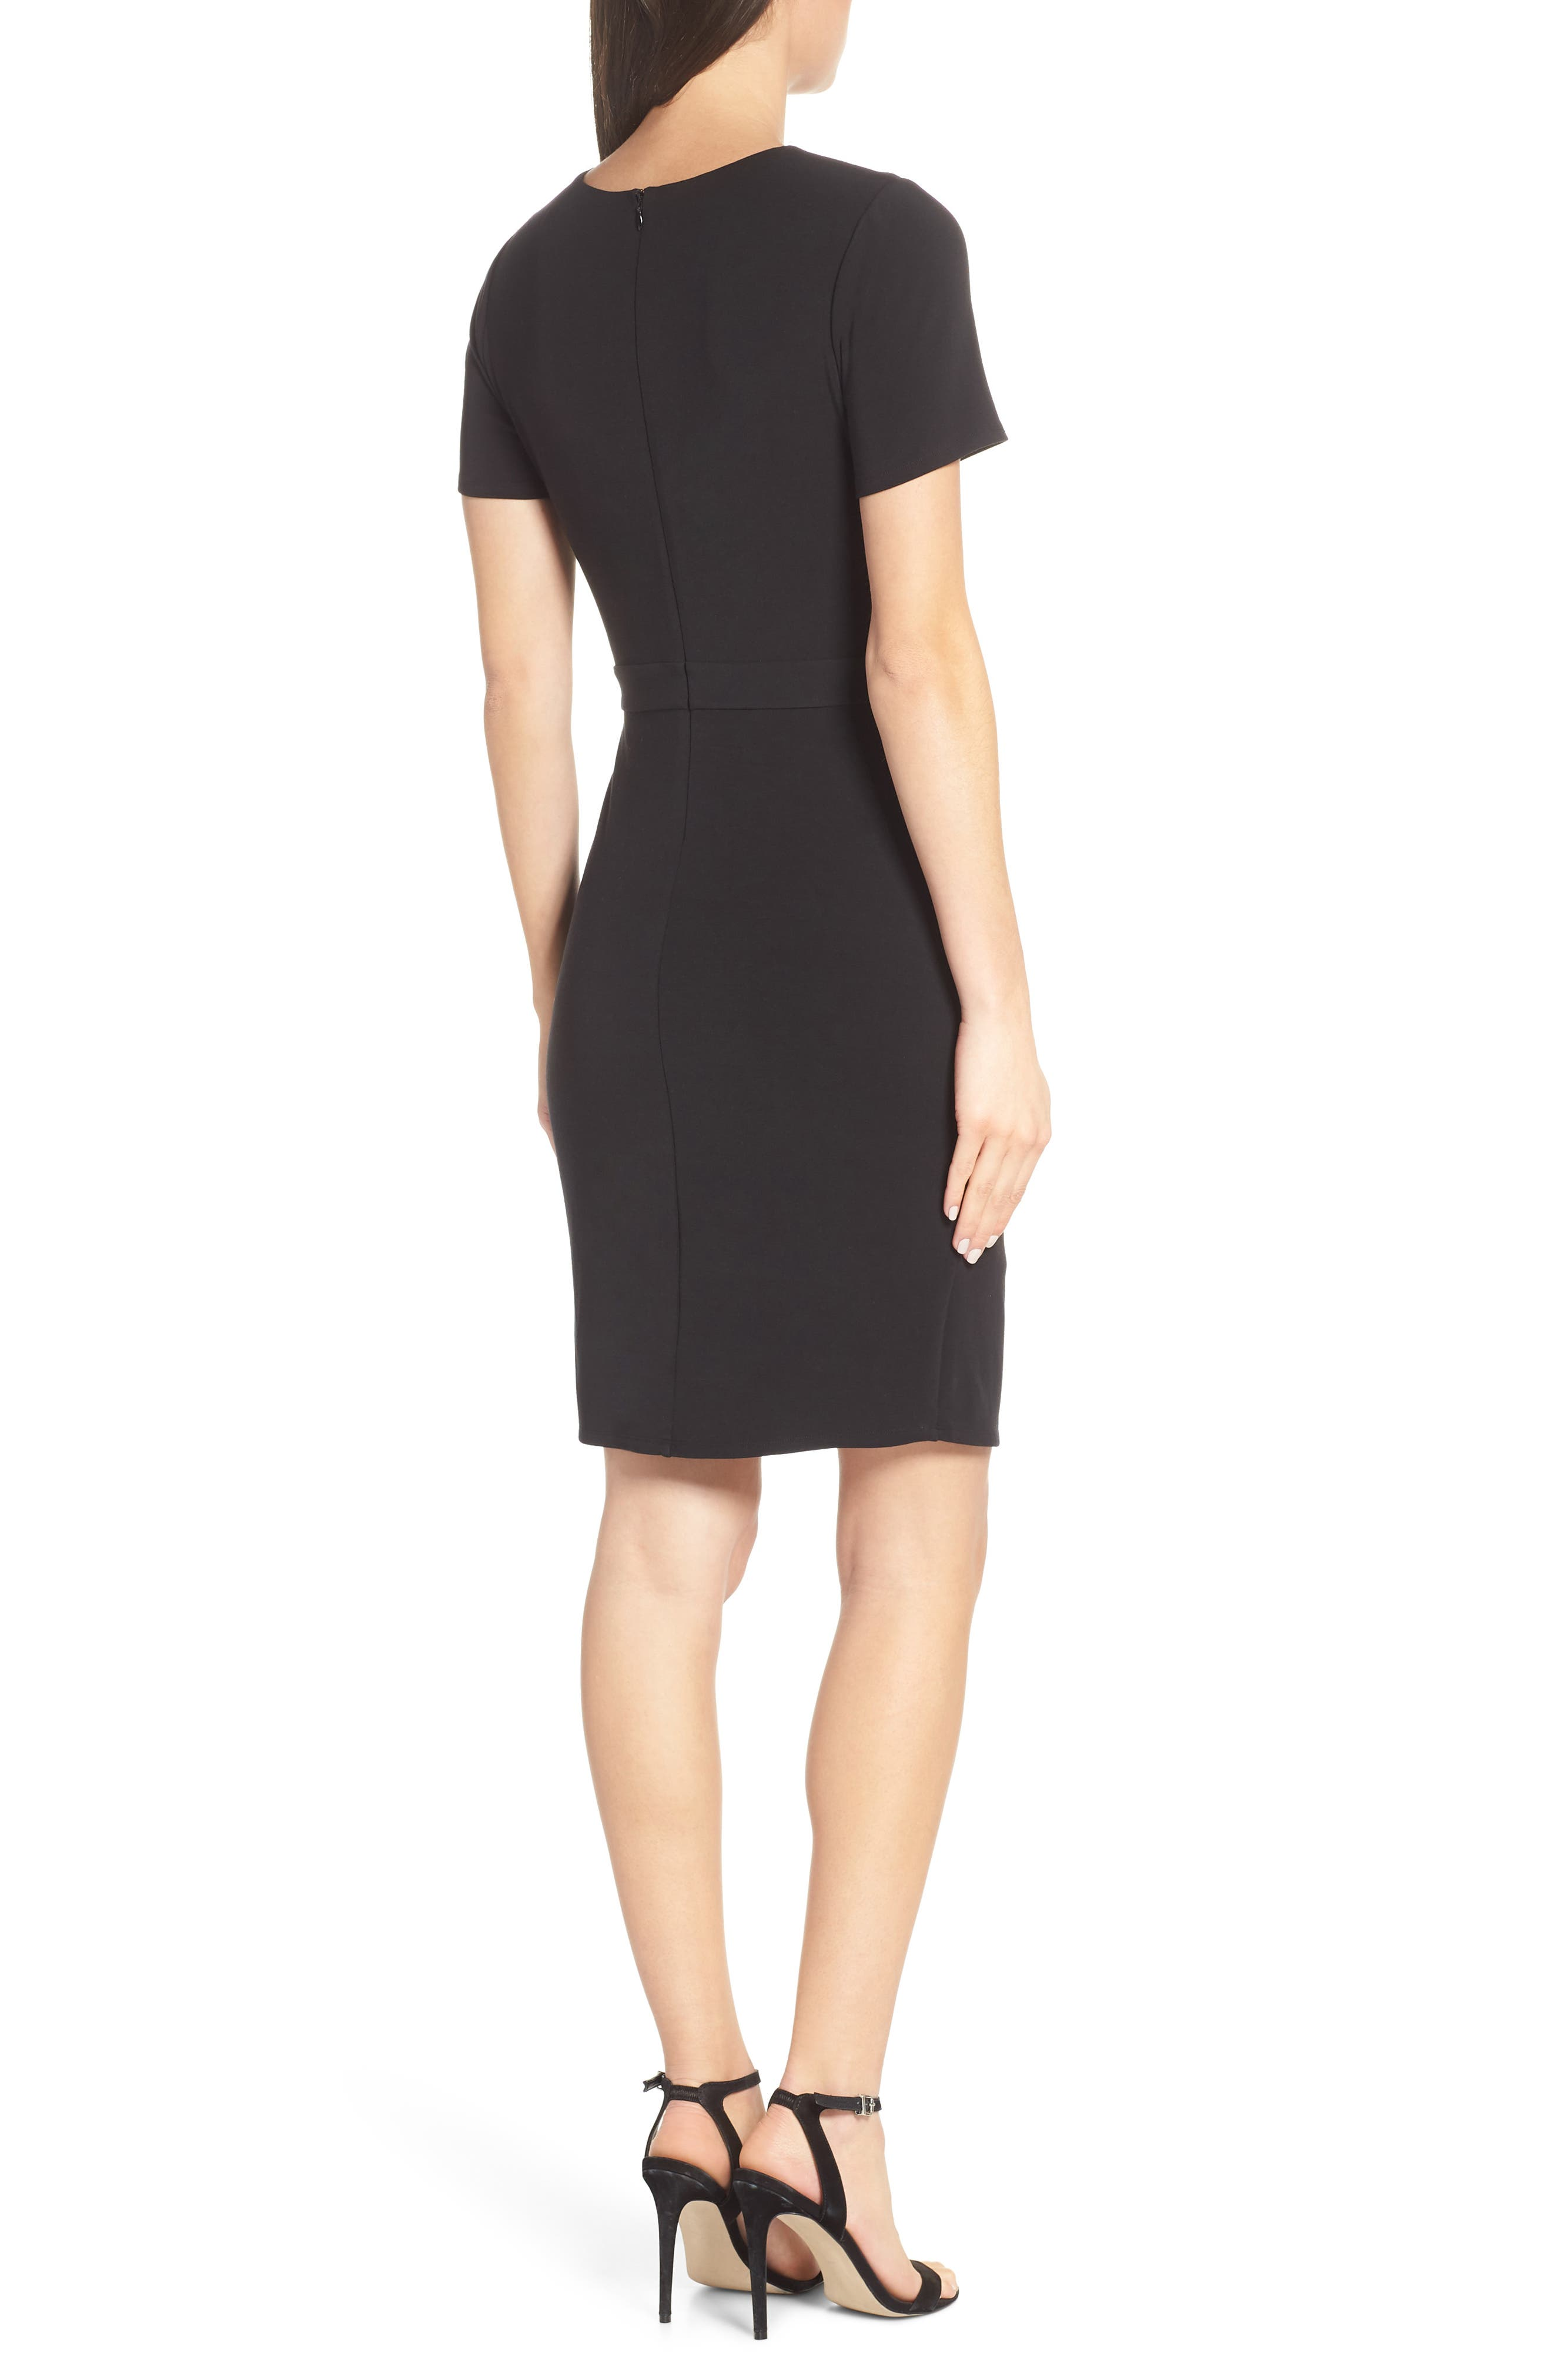 ALI & JAY, Pleated Jersey Dress, Alternate thumbnail 2, color, BLACK